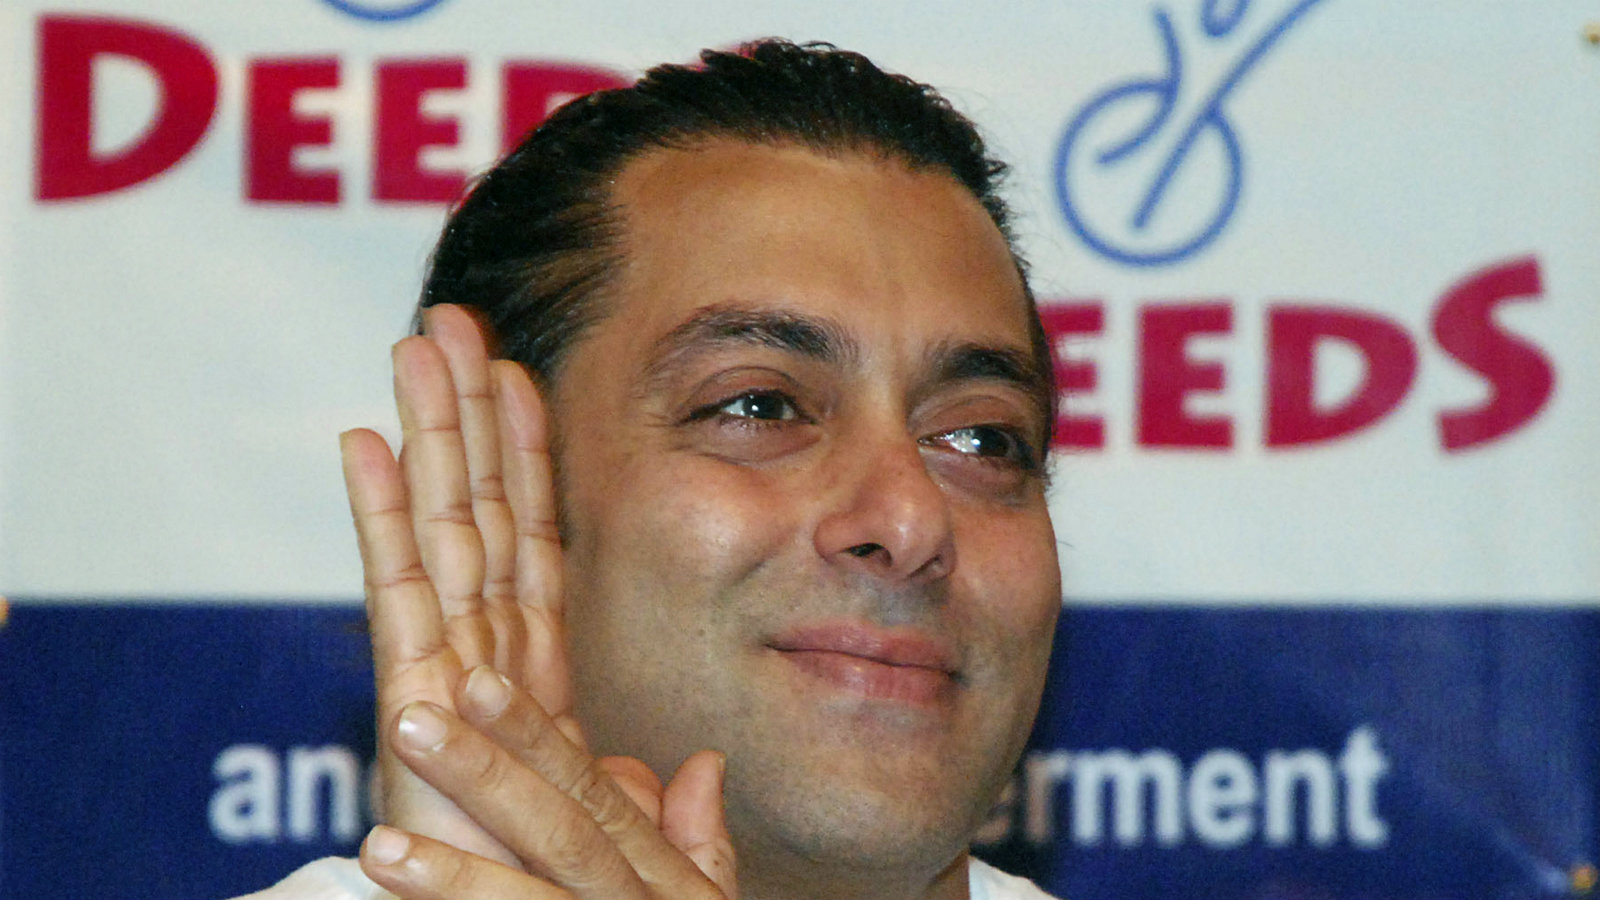 Bollywood actor Salman Khan gestures at a news conference after he inaugurated an art exhibition in Mumbai July 31, 2009. The proceedings of the exhibition will go to Deeds, a non-governmental organisation, organisers of the exhibition said.